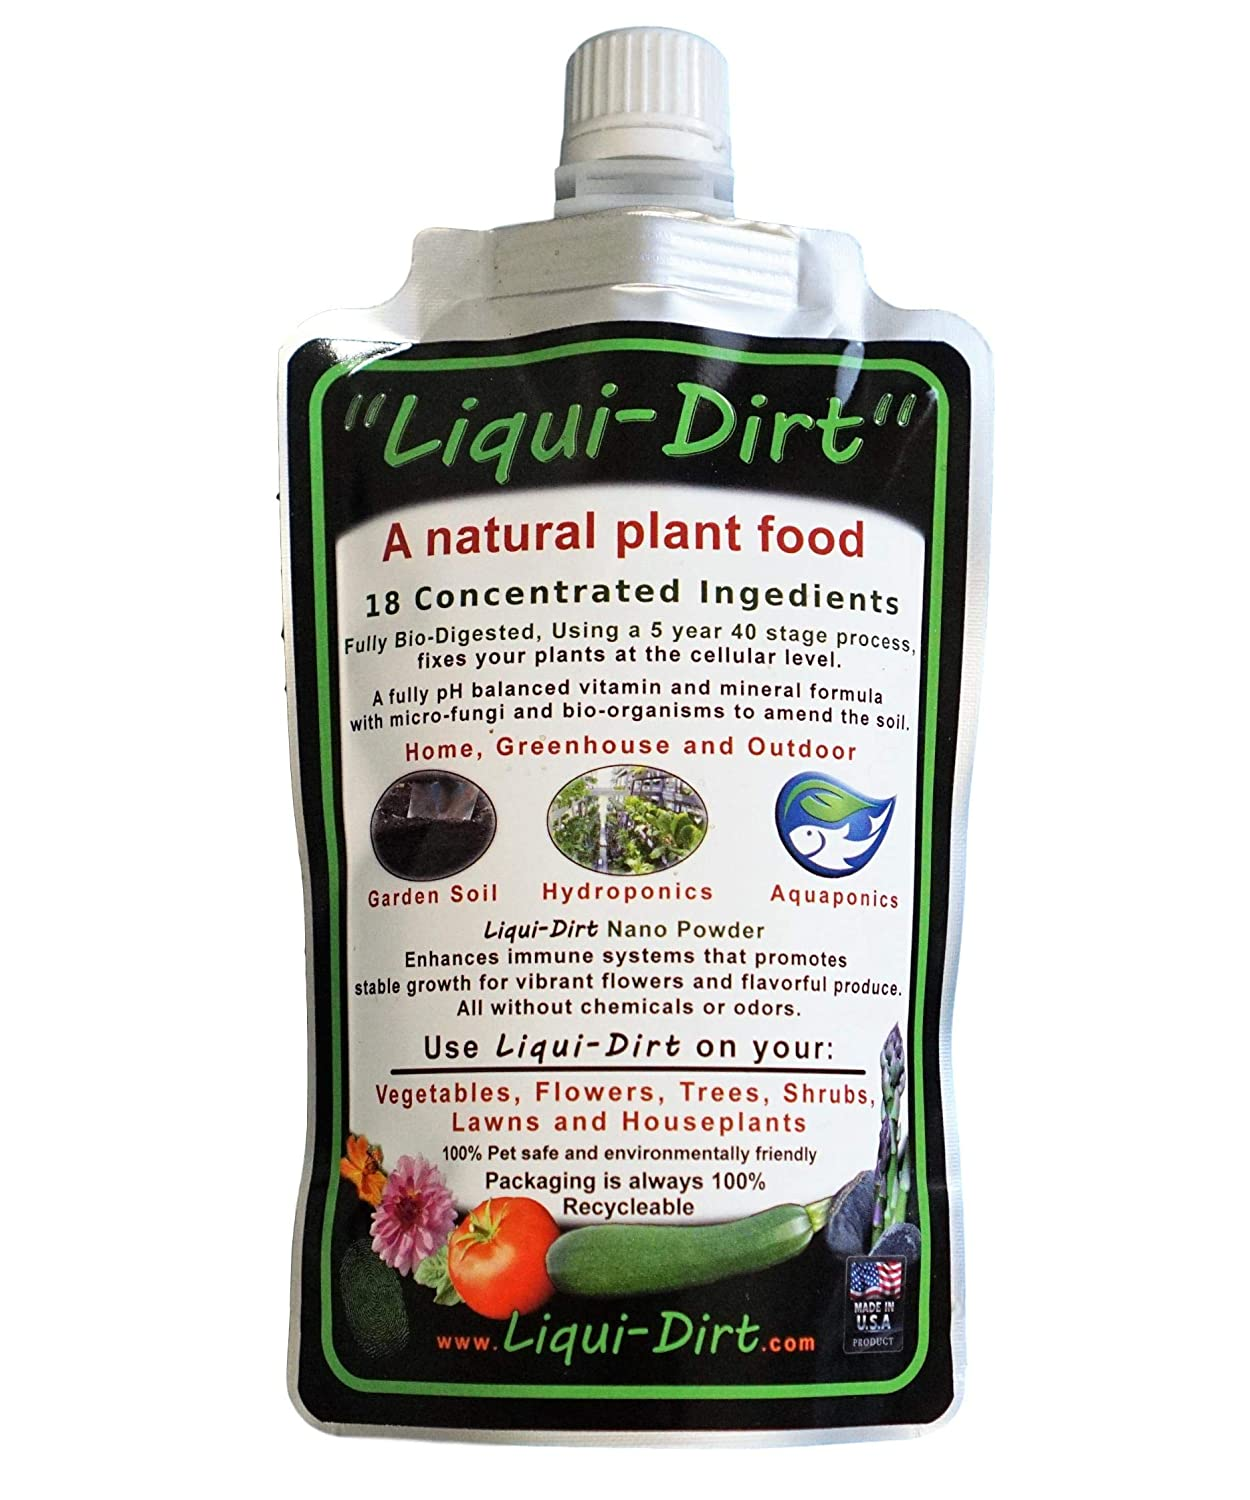 LiquiDirt Complete Plant Nutrition (8oz Bottle: Makes 45 to 1000 gallons) Liqui-Dirt Natural Organic Earth-Friendly Pet-Safe Plant Supplement Indoor Outdoor Garden